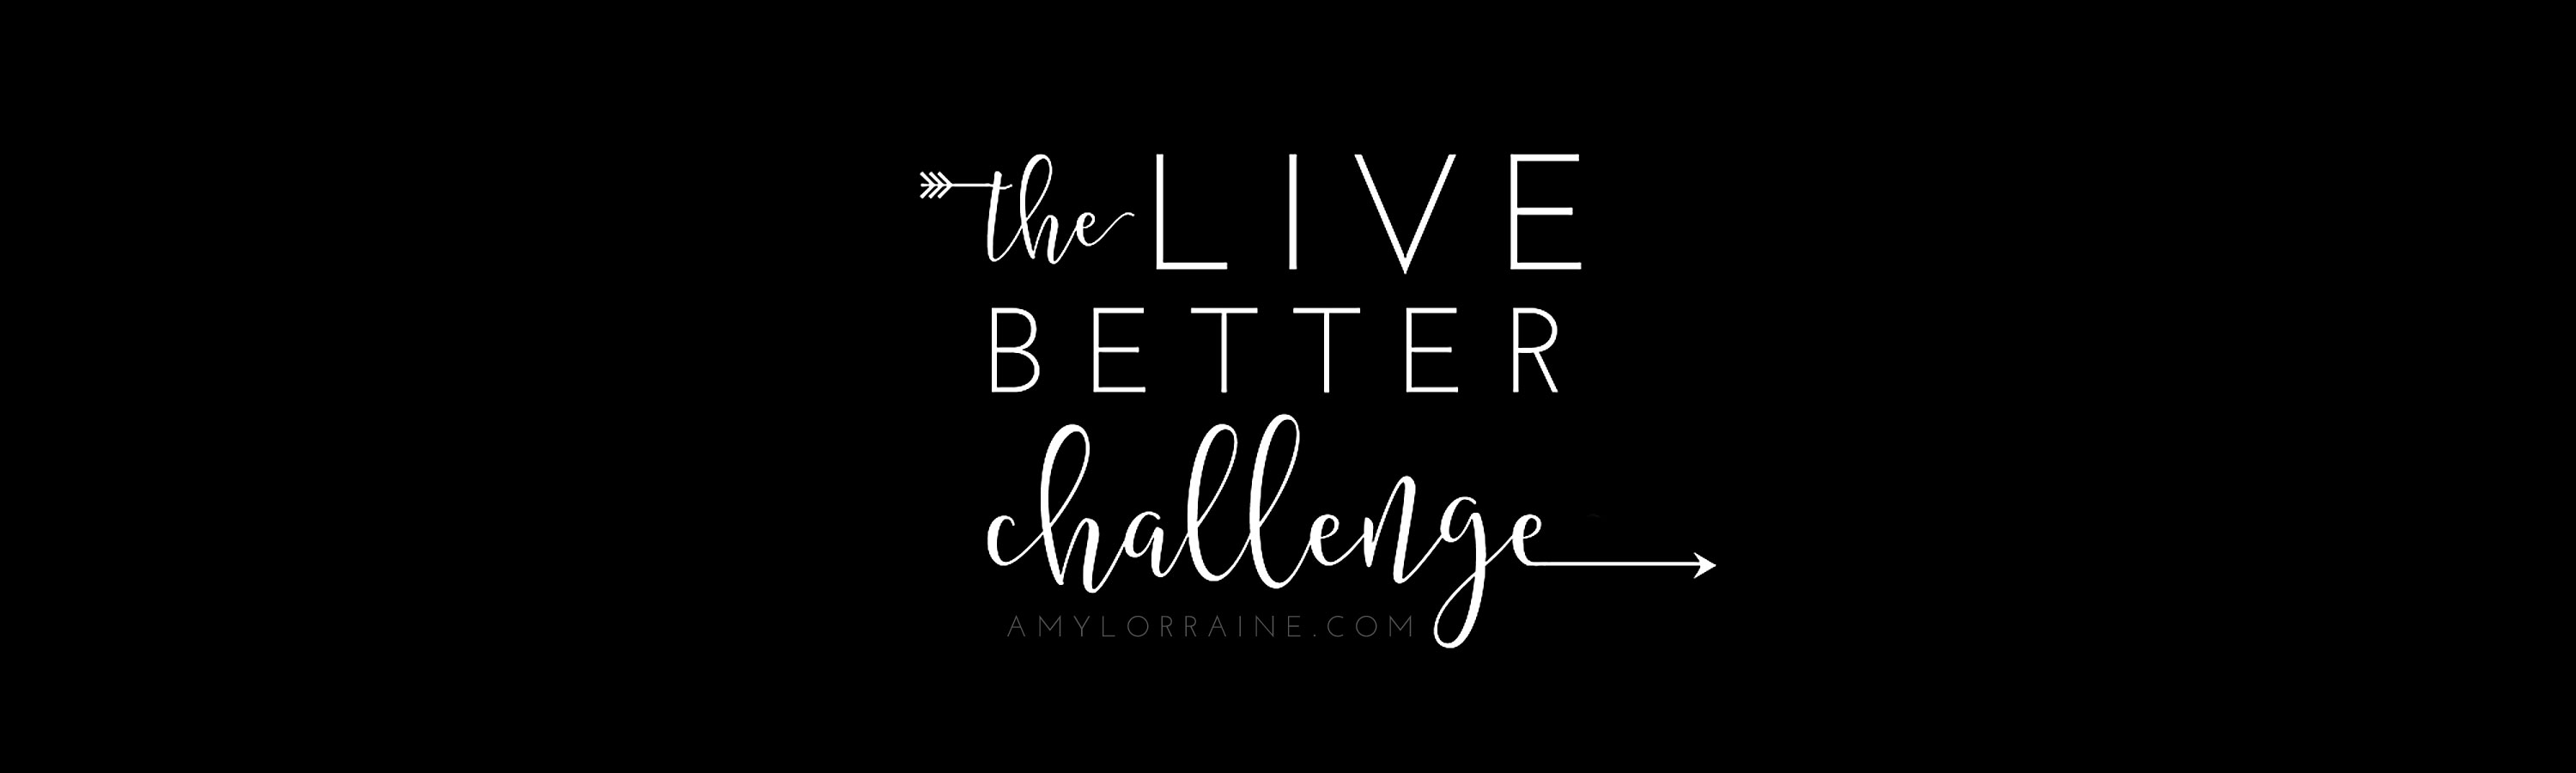 The Live Better Challenge | www.amyloraine.com